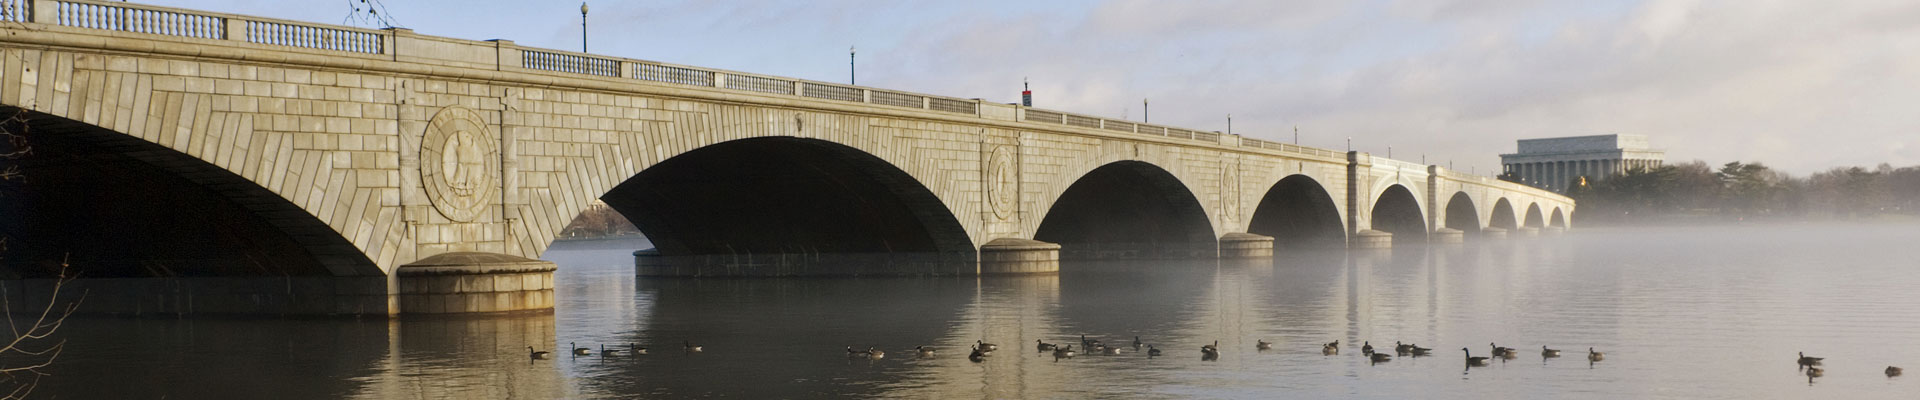 StoneGate Realty Group Arlington Memorial Bridge